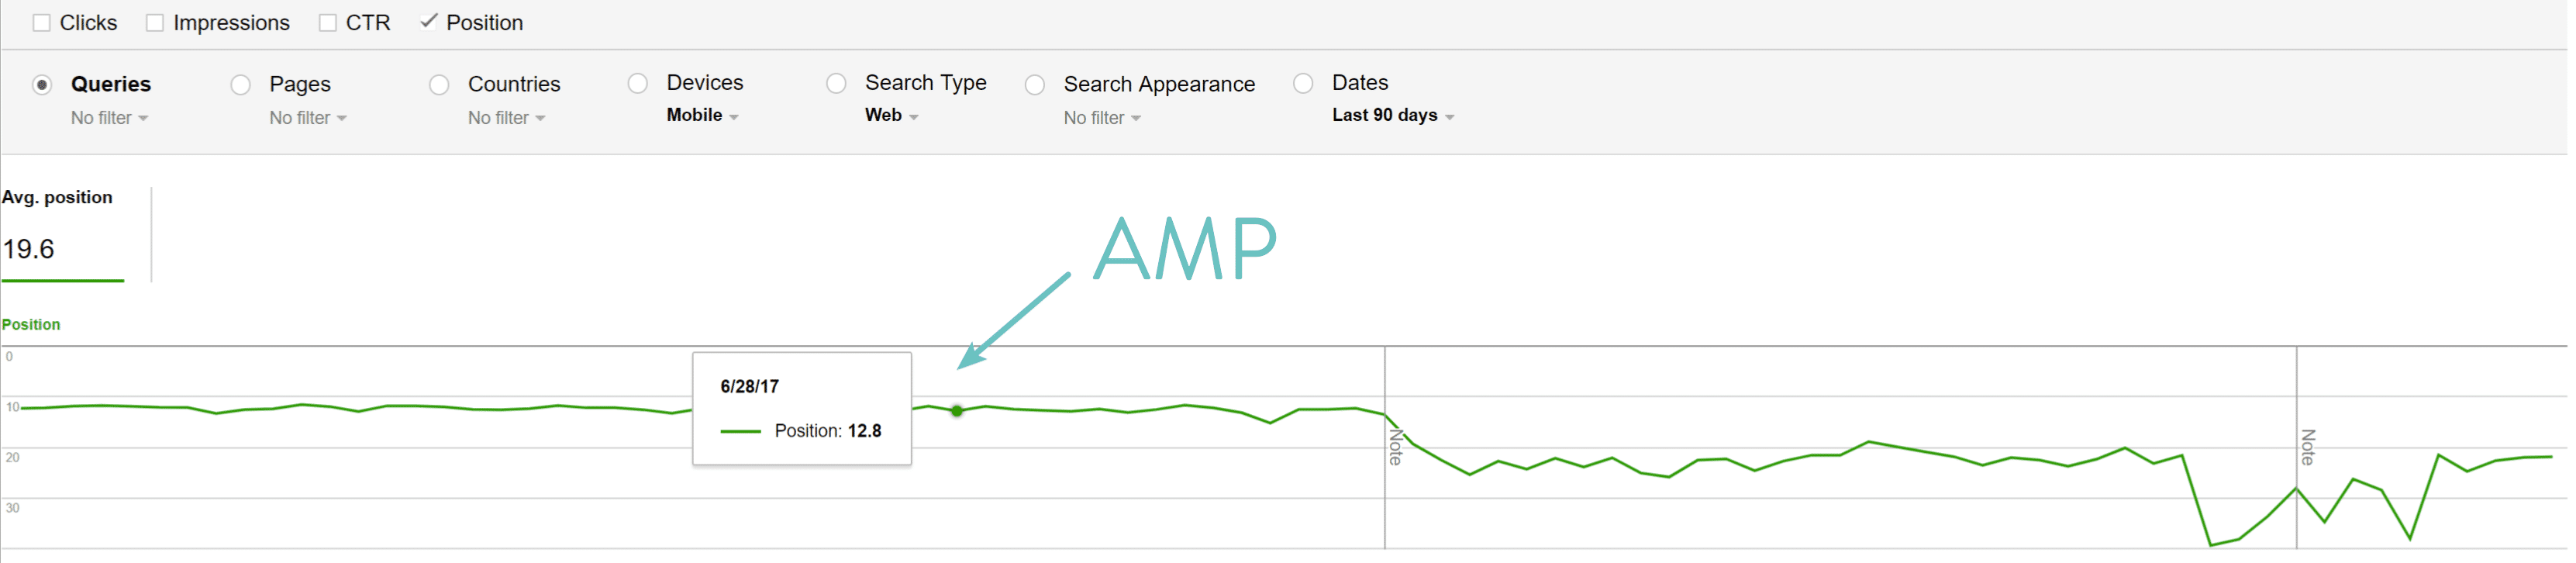 Google AMP positionsdata